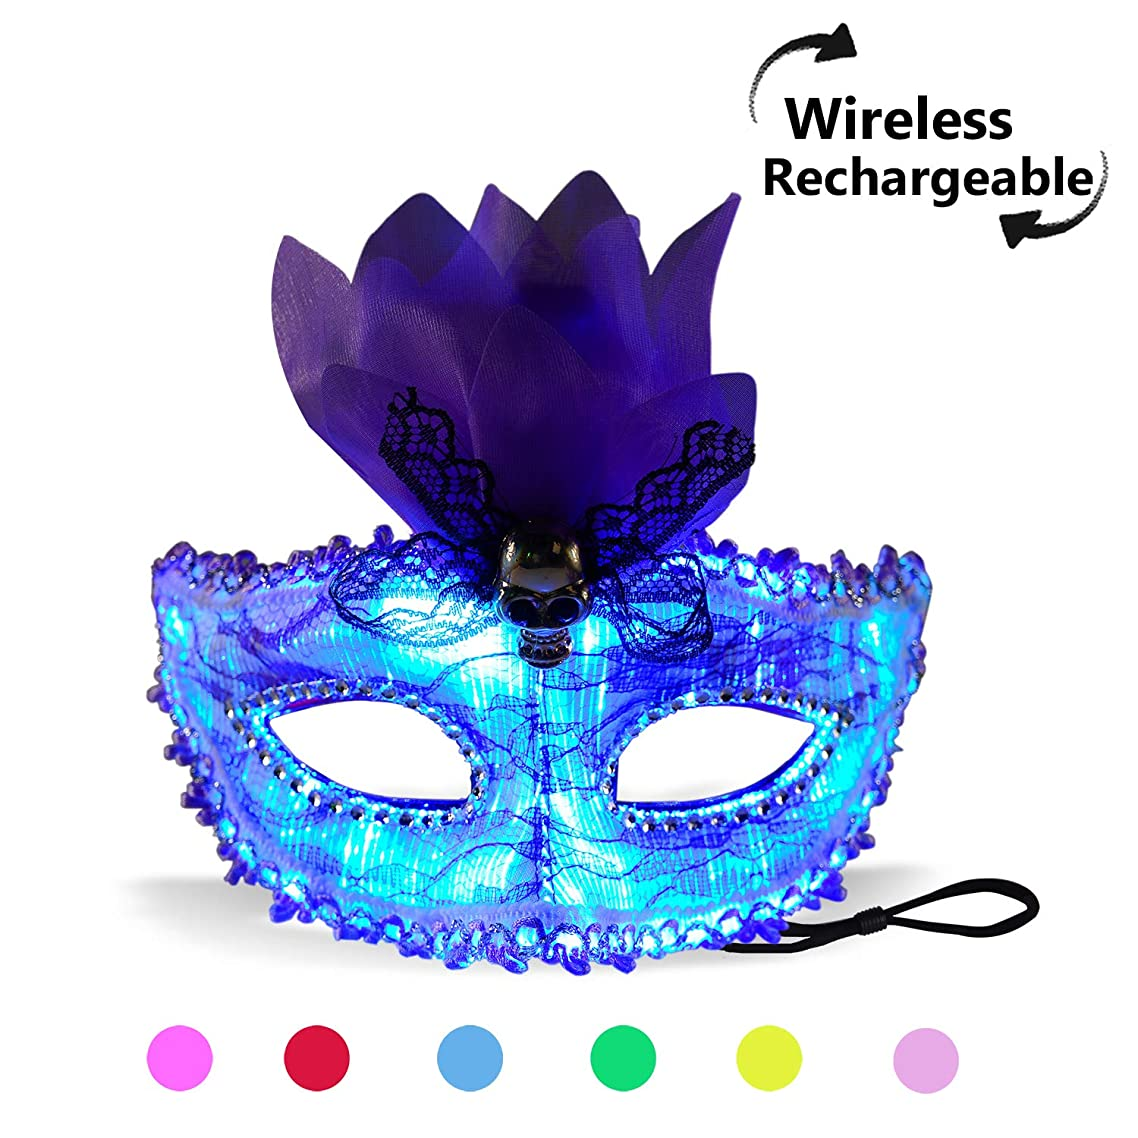 7 Color Lights LED Light up Venetian Mask USB Rechargeable Glowing Luminous Eye Mask for Christmas Party Festival Dancing Rave Masquerade Costumes (Eye Mask)